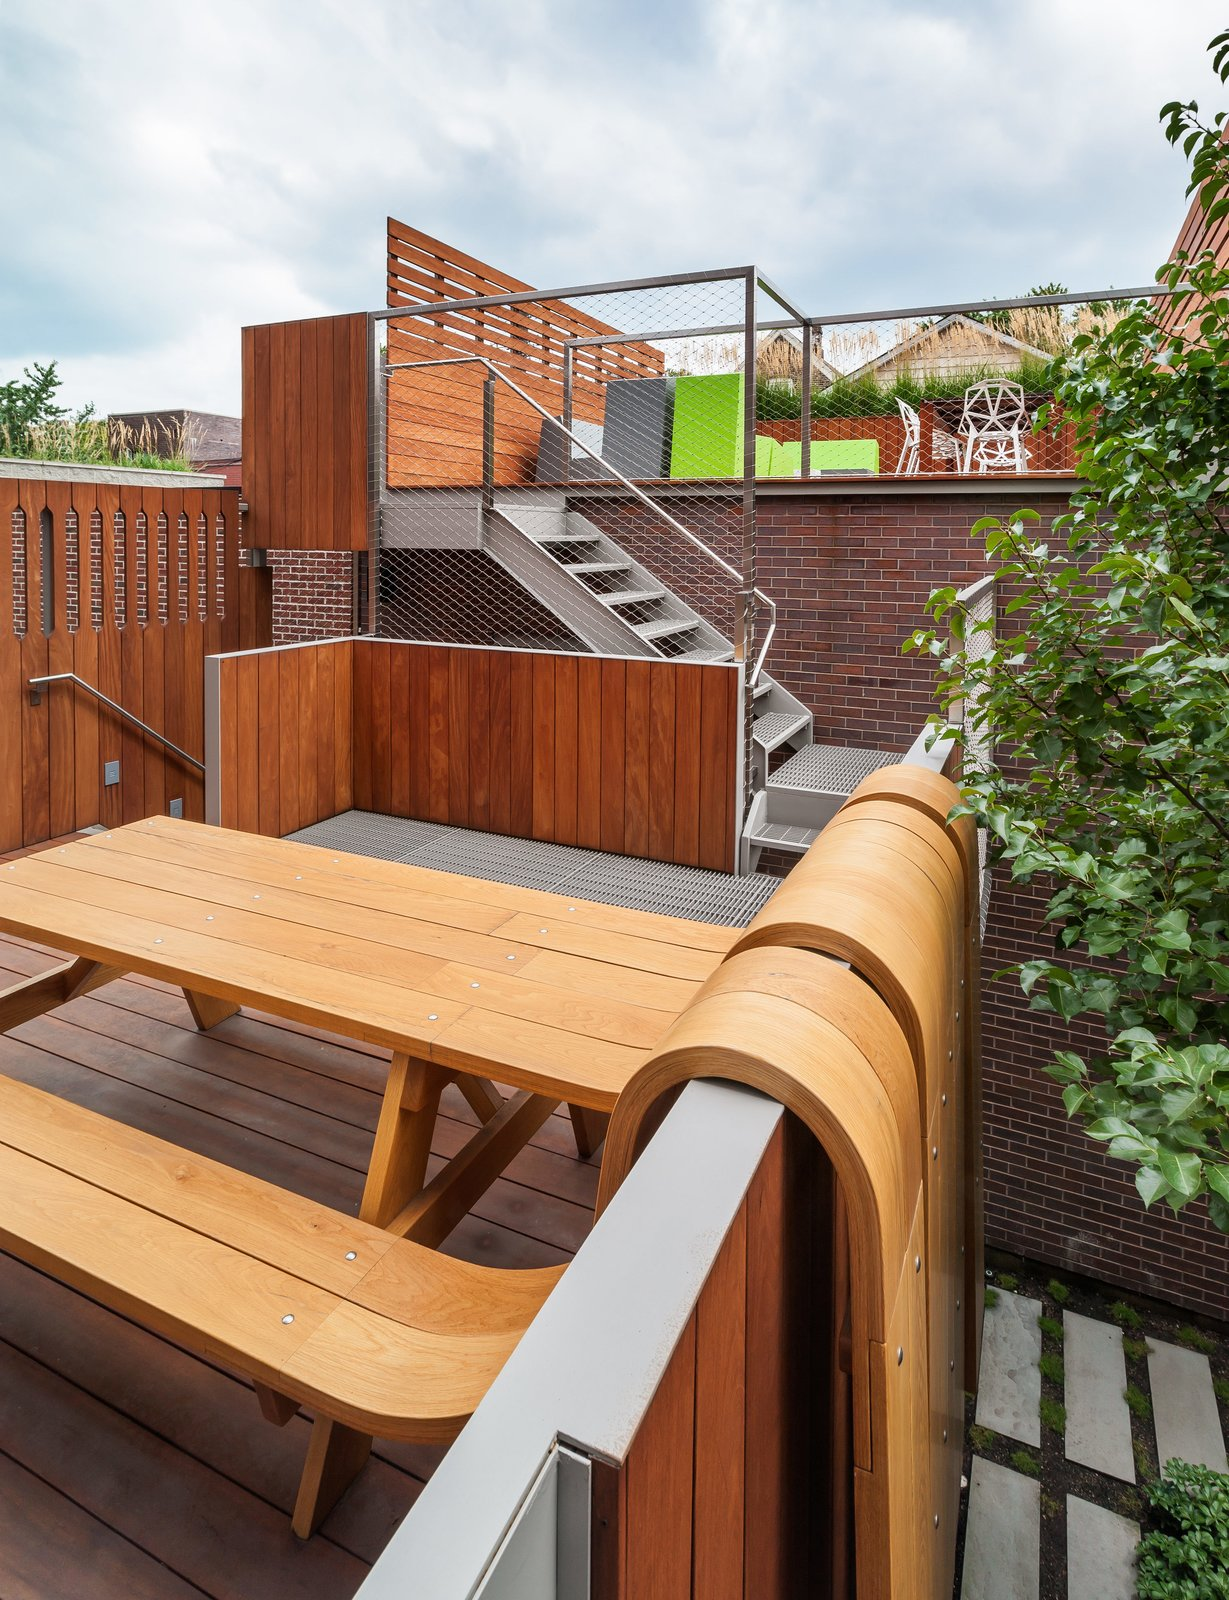 Outdoor, Rooftop, Vertical Fences, Wall, Wood Fences, Wall, Wood Patio, Porch, Deck, and Horizontal Fences, Wall A sculptural picnic table by artist Michael Beitz flows over the fence like a waterfall.  30+ Best Modern Fences by William Lamb from Four Floors of Gadgets and Gardens in Chicago